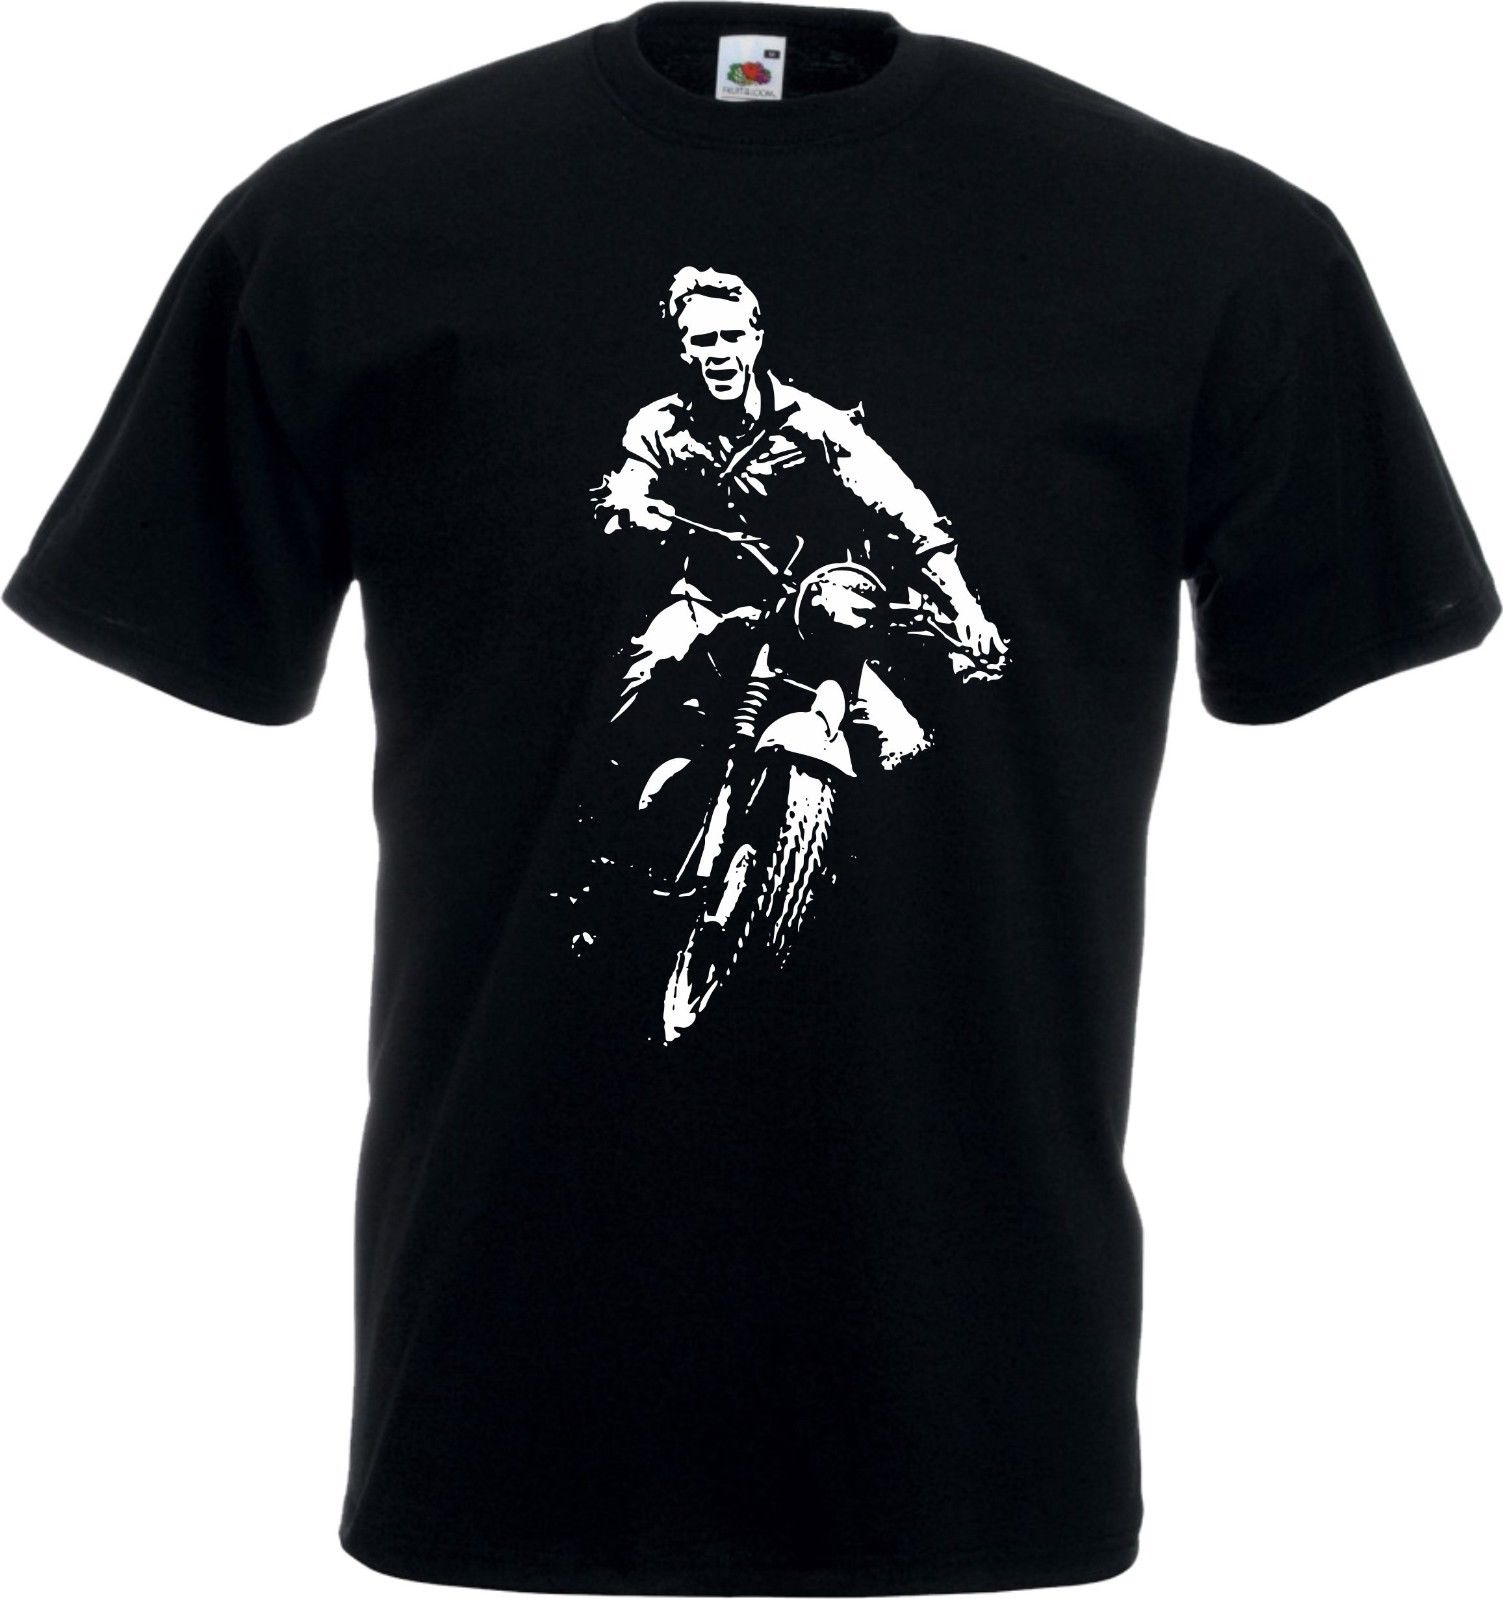 2018 New Cool T-shirt Steve McQueen The Great Escape T-shirt - Classic Brit Film, All Colours & Sizes